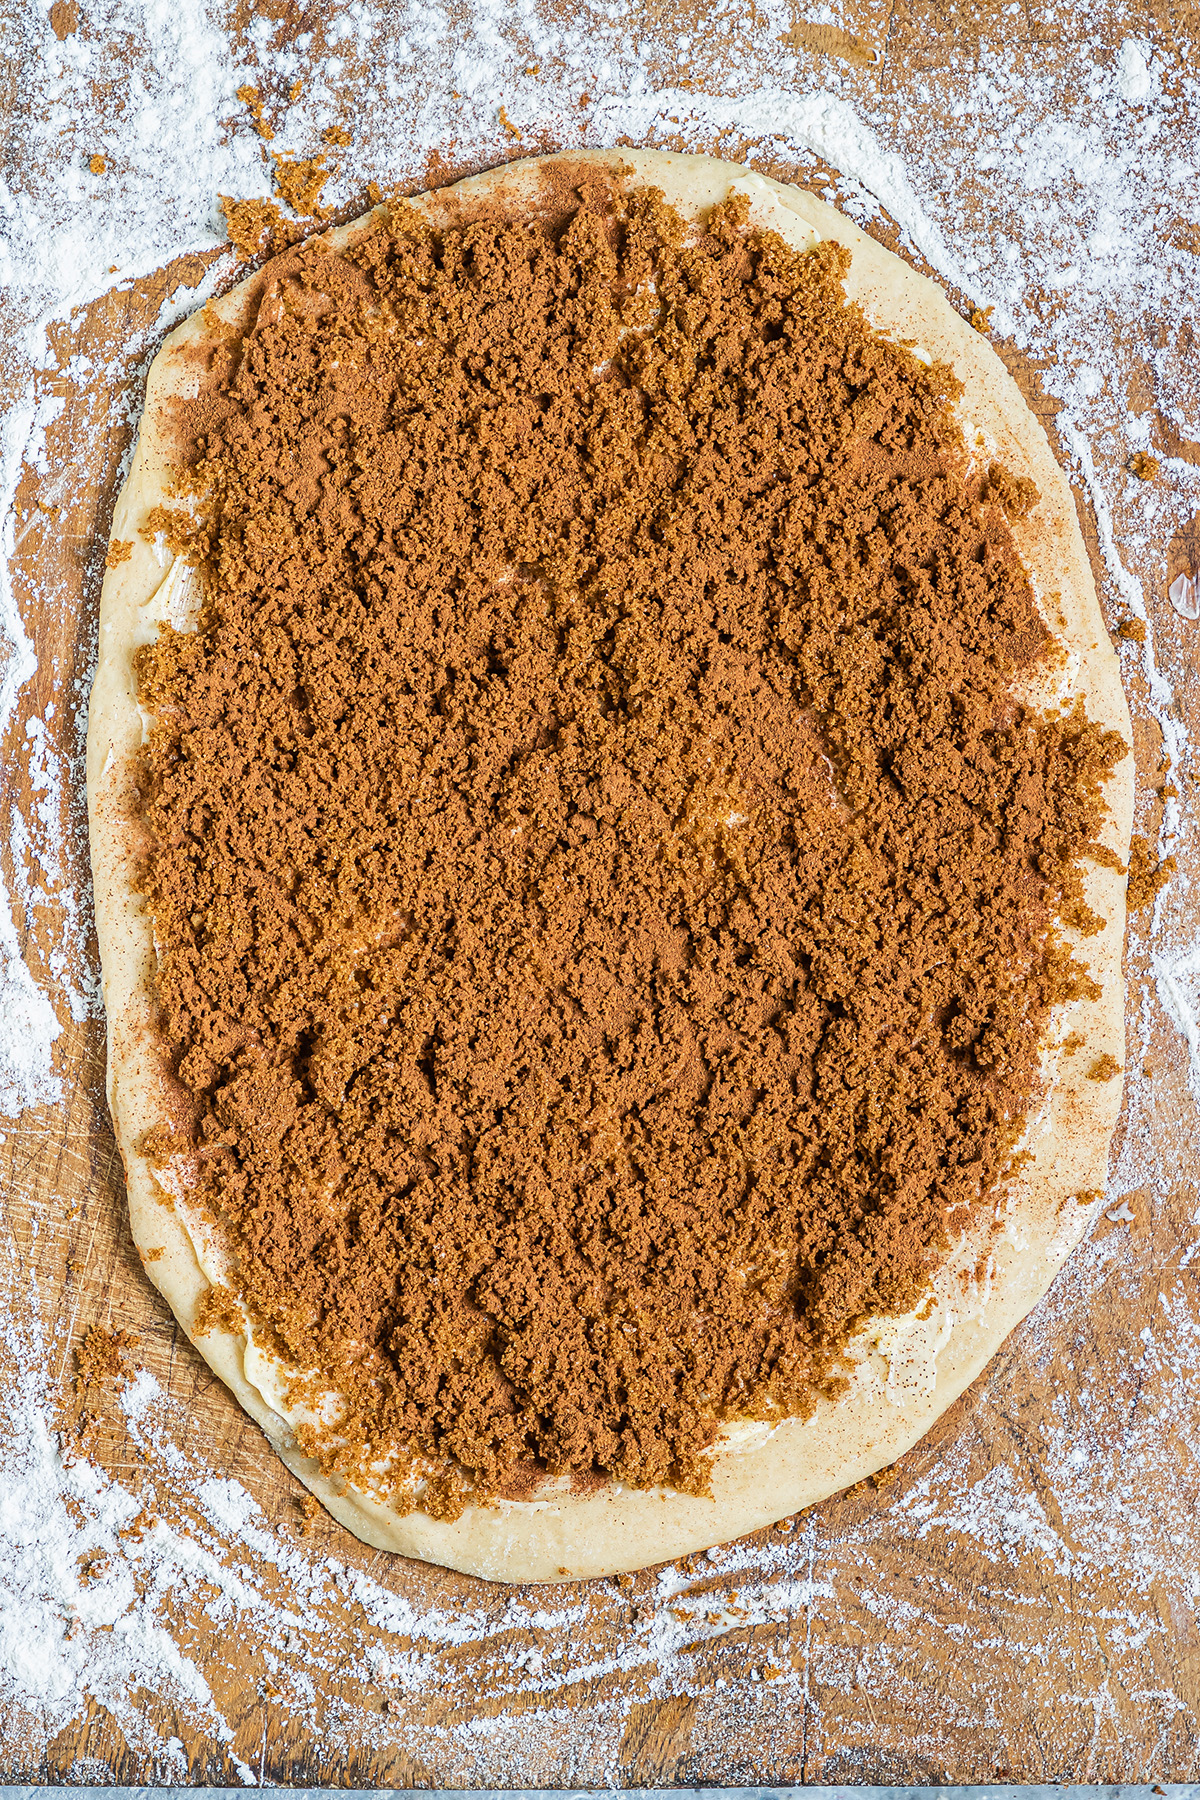 raw dough and a cinnamon mixture spread out on a countertop